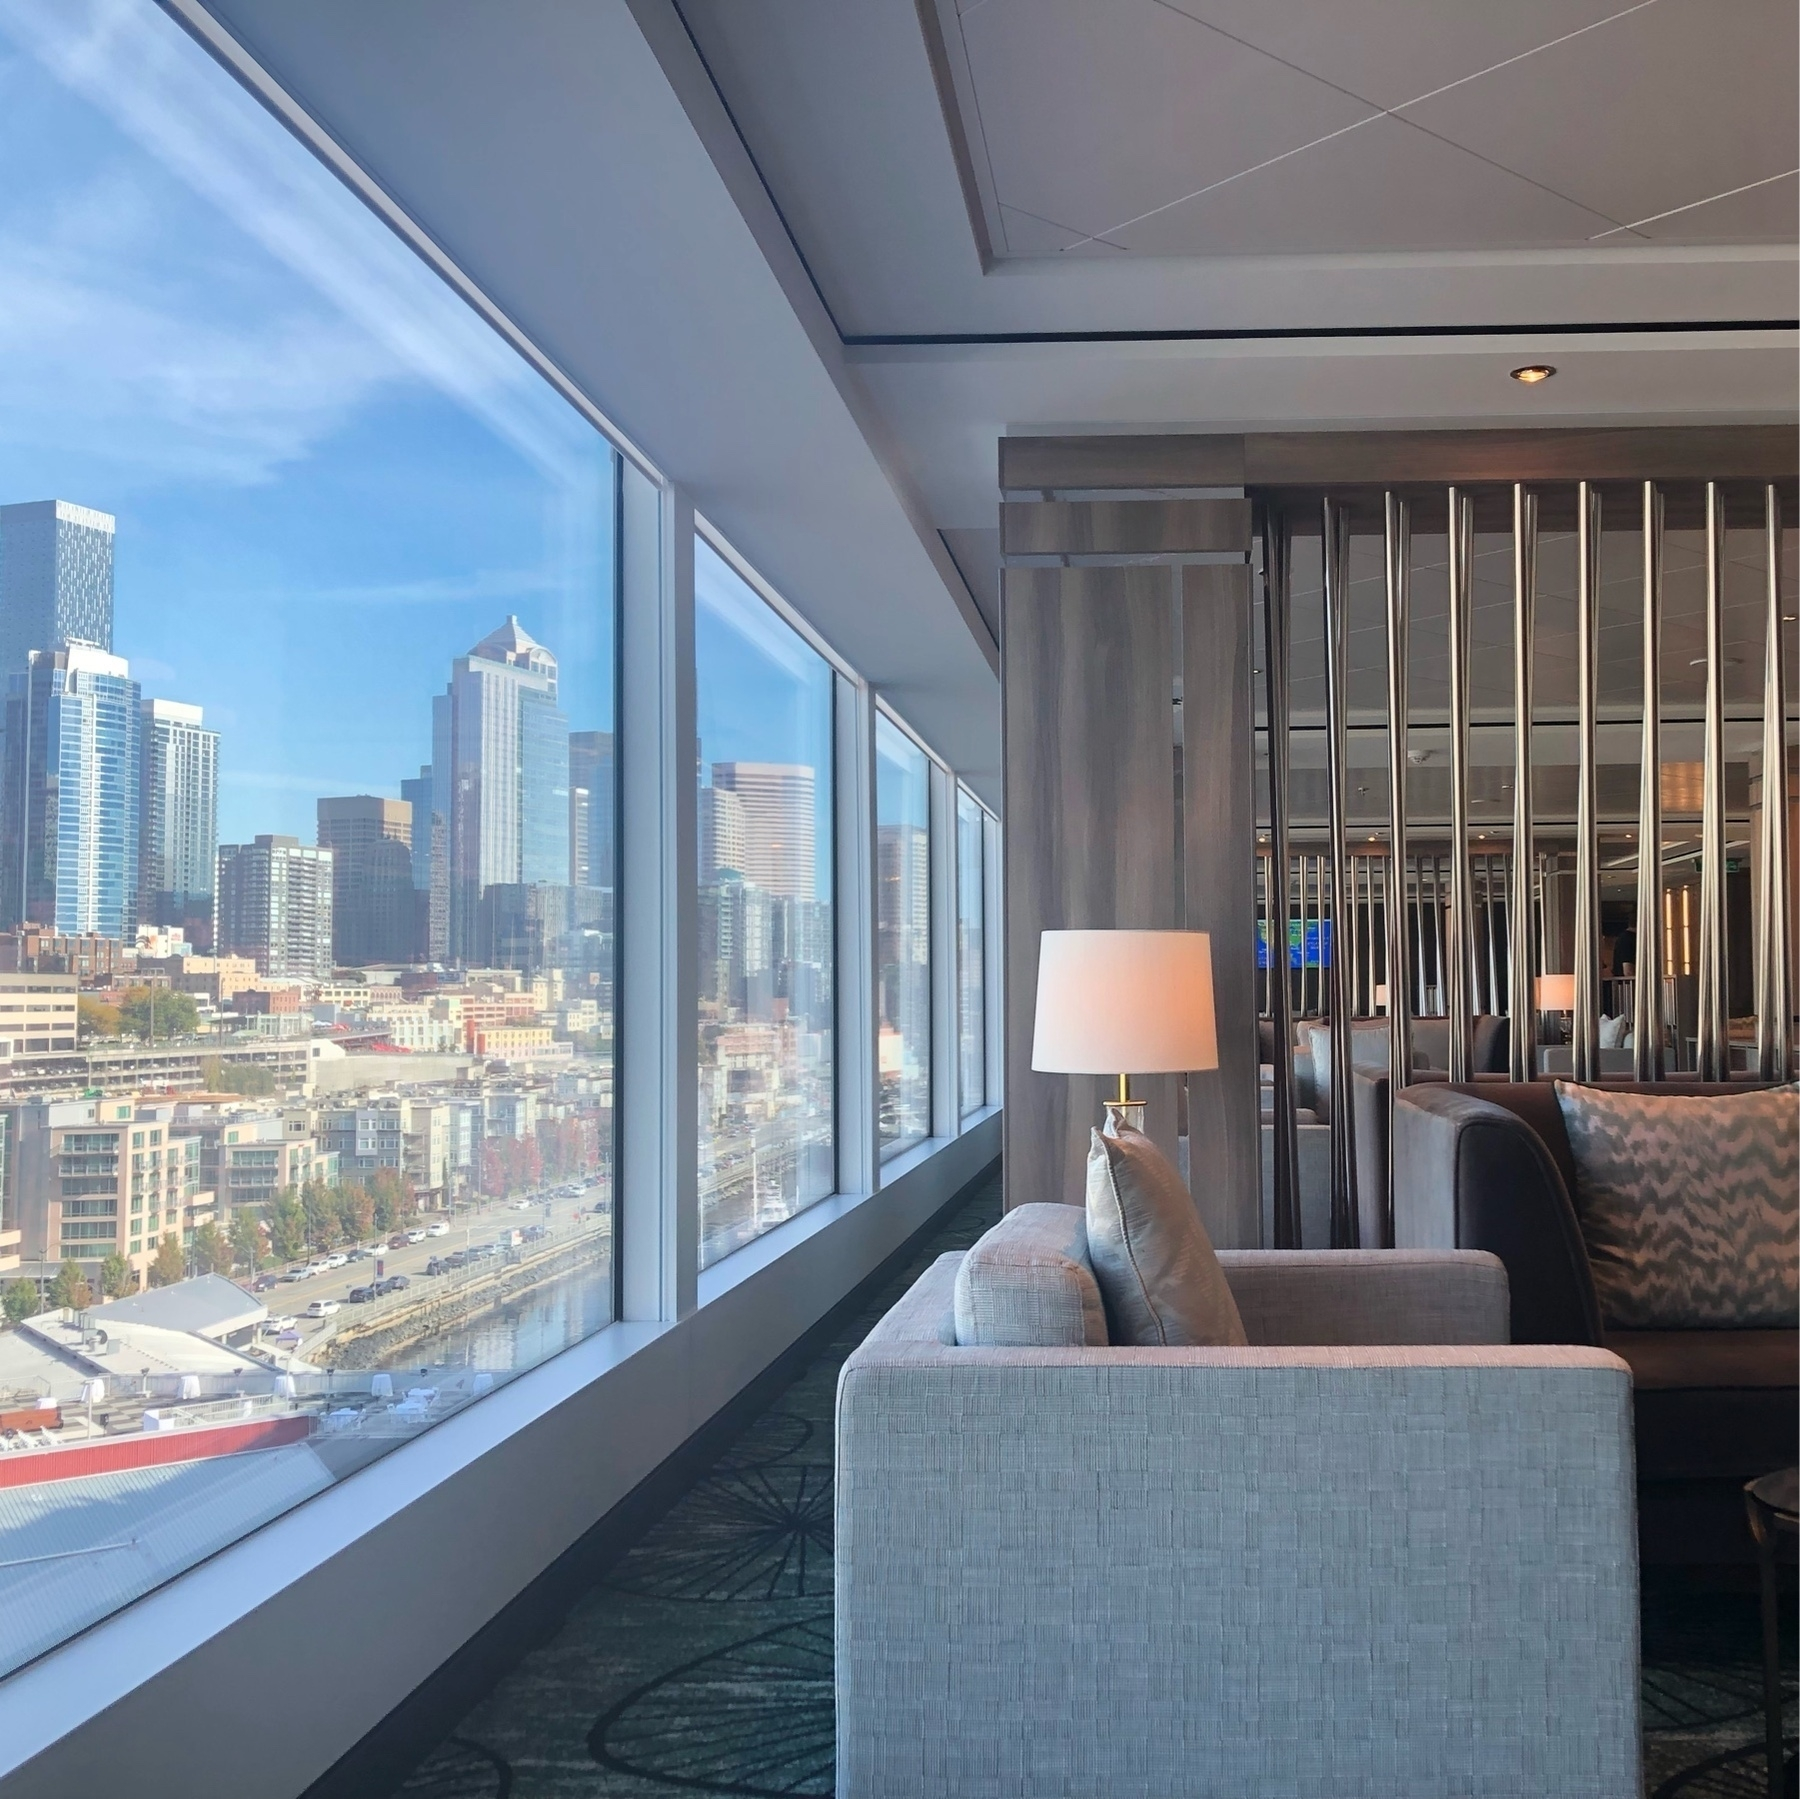 A fancy lounge with modern decor and square couches. To the left, downtown Seattle is visible through the big windows. The day is sunny.